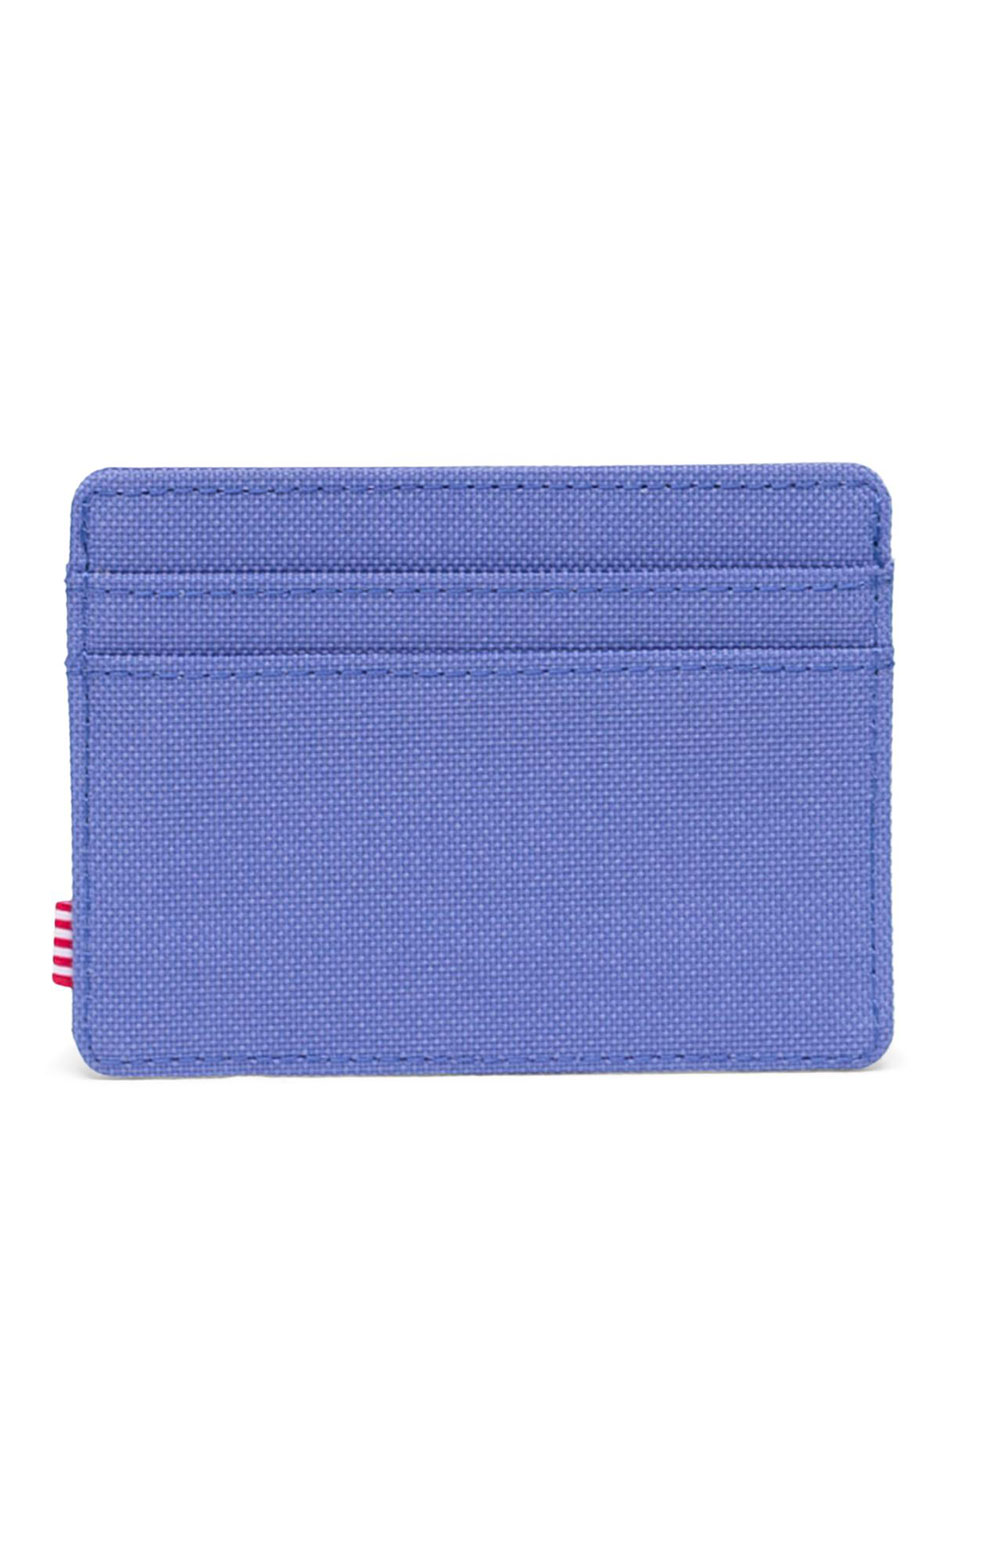 Charlie Wallet - Dusted Peri 3